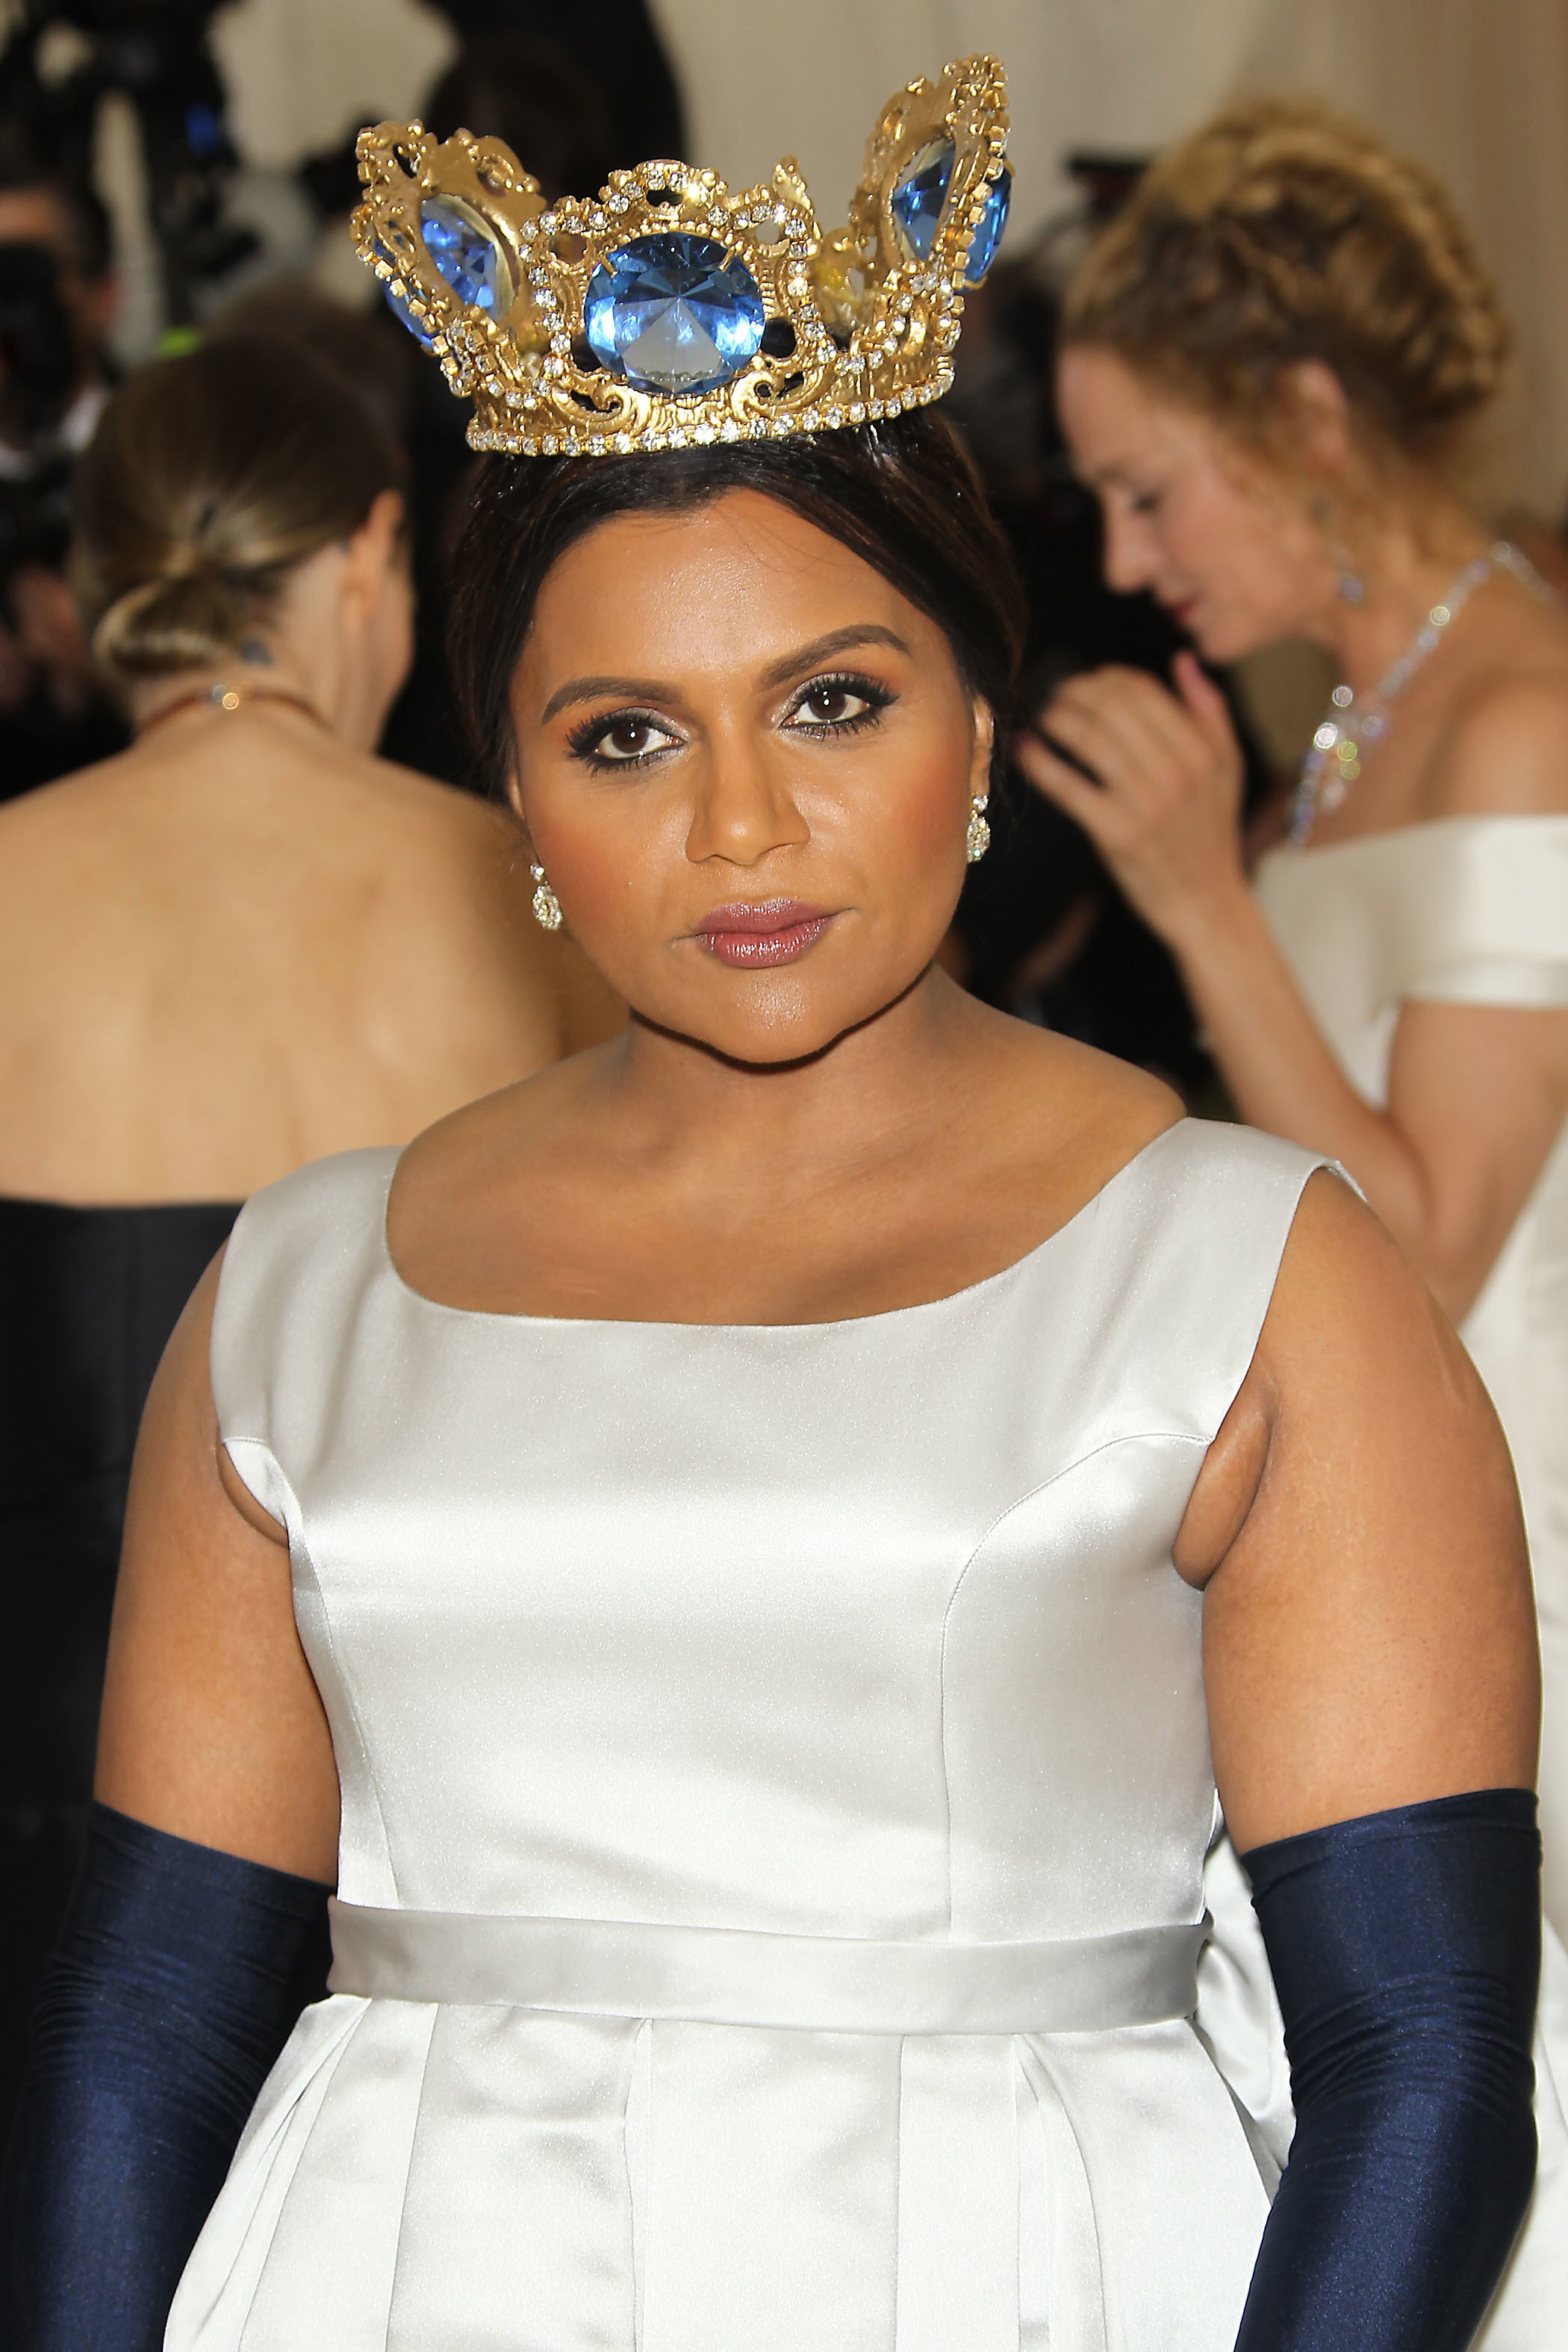 Mindy Kaling attends The Metropolitan Museum of Art's Costume Institute Benefit celebrating the opening of Heavenly Bodies: Fashion and the Catholic Imagination in New York City on May 7, 2018.